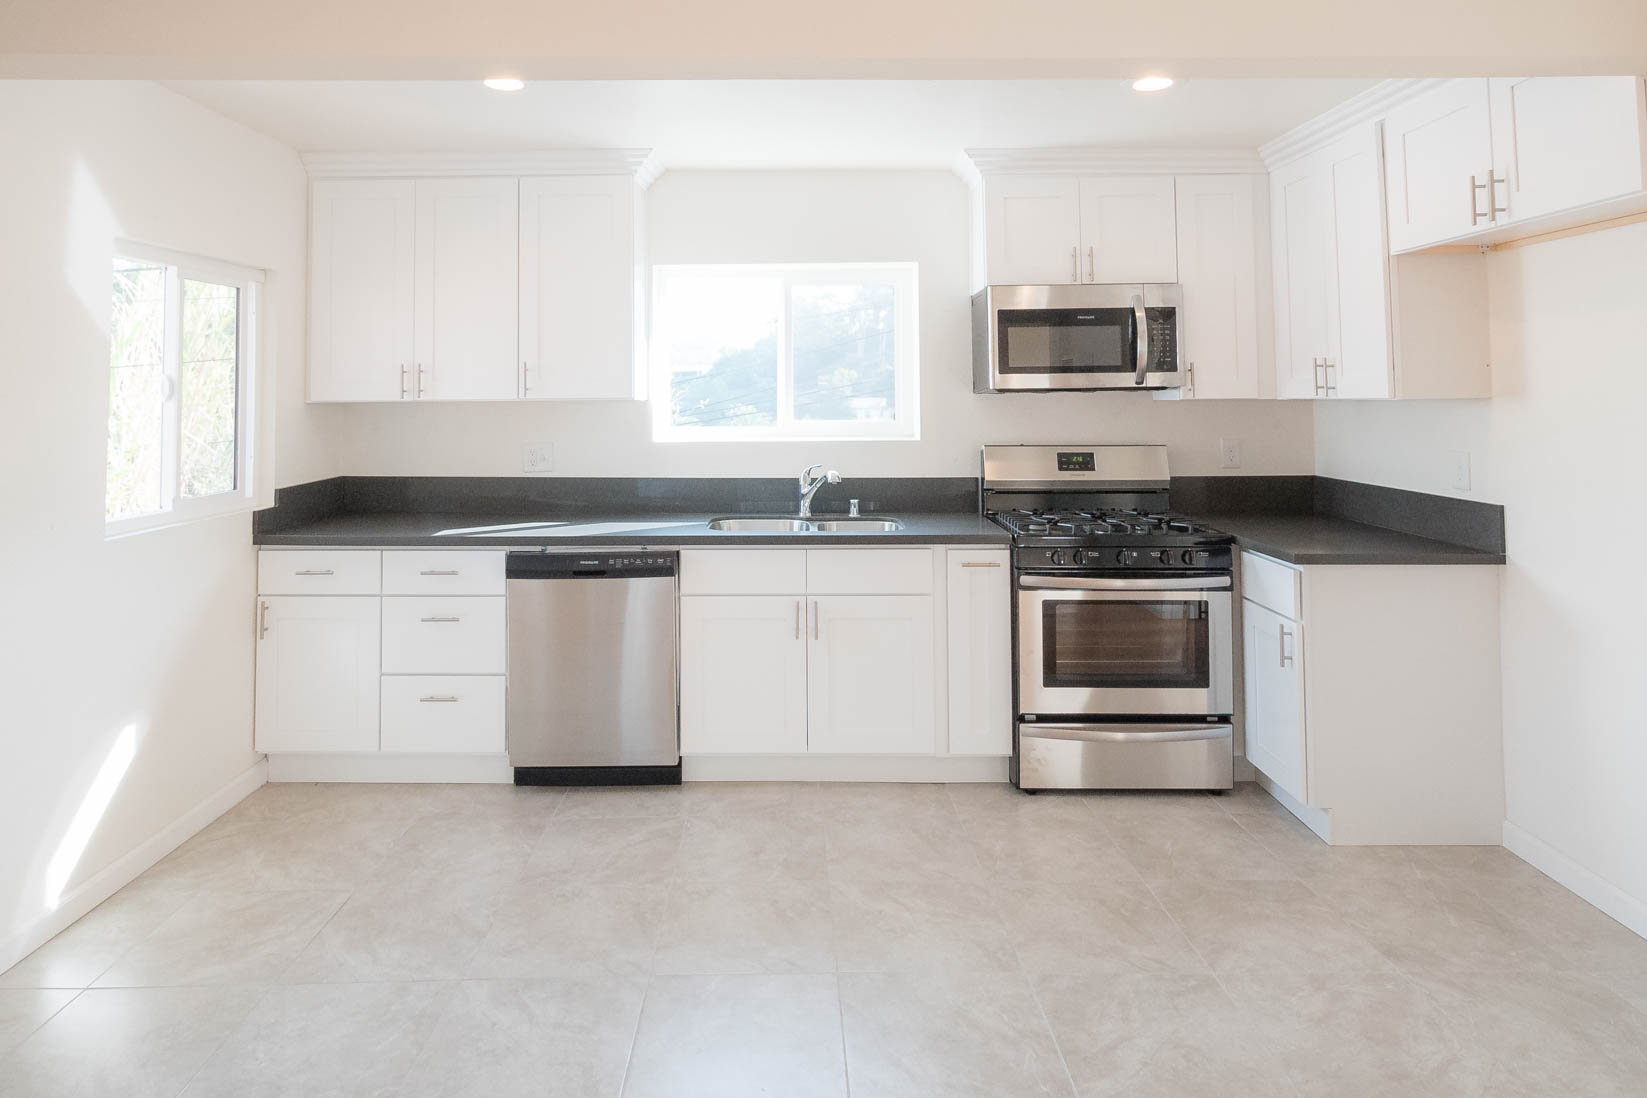 Secluded NELA Back House | Peekaboo Views | W/D In-Unit | Private Outdoor Space!